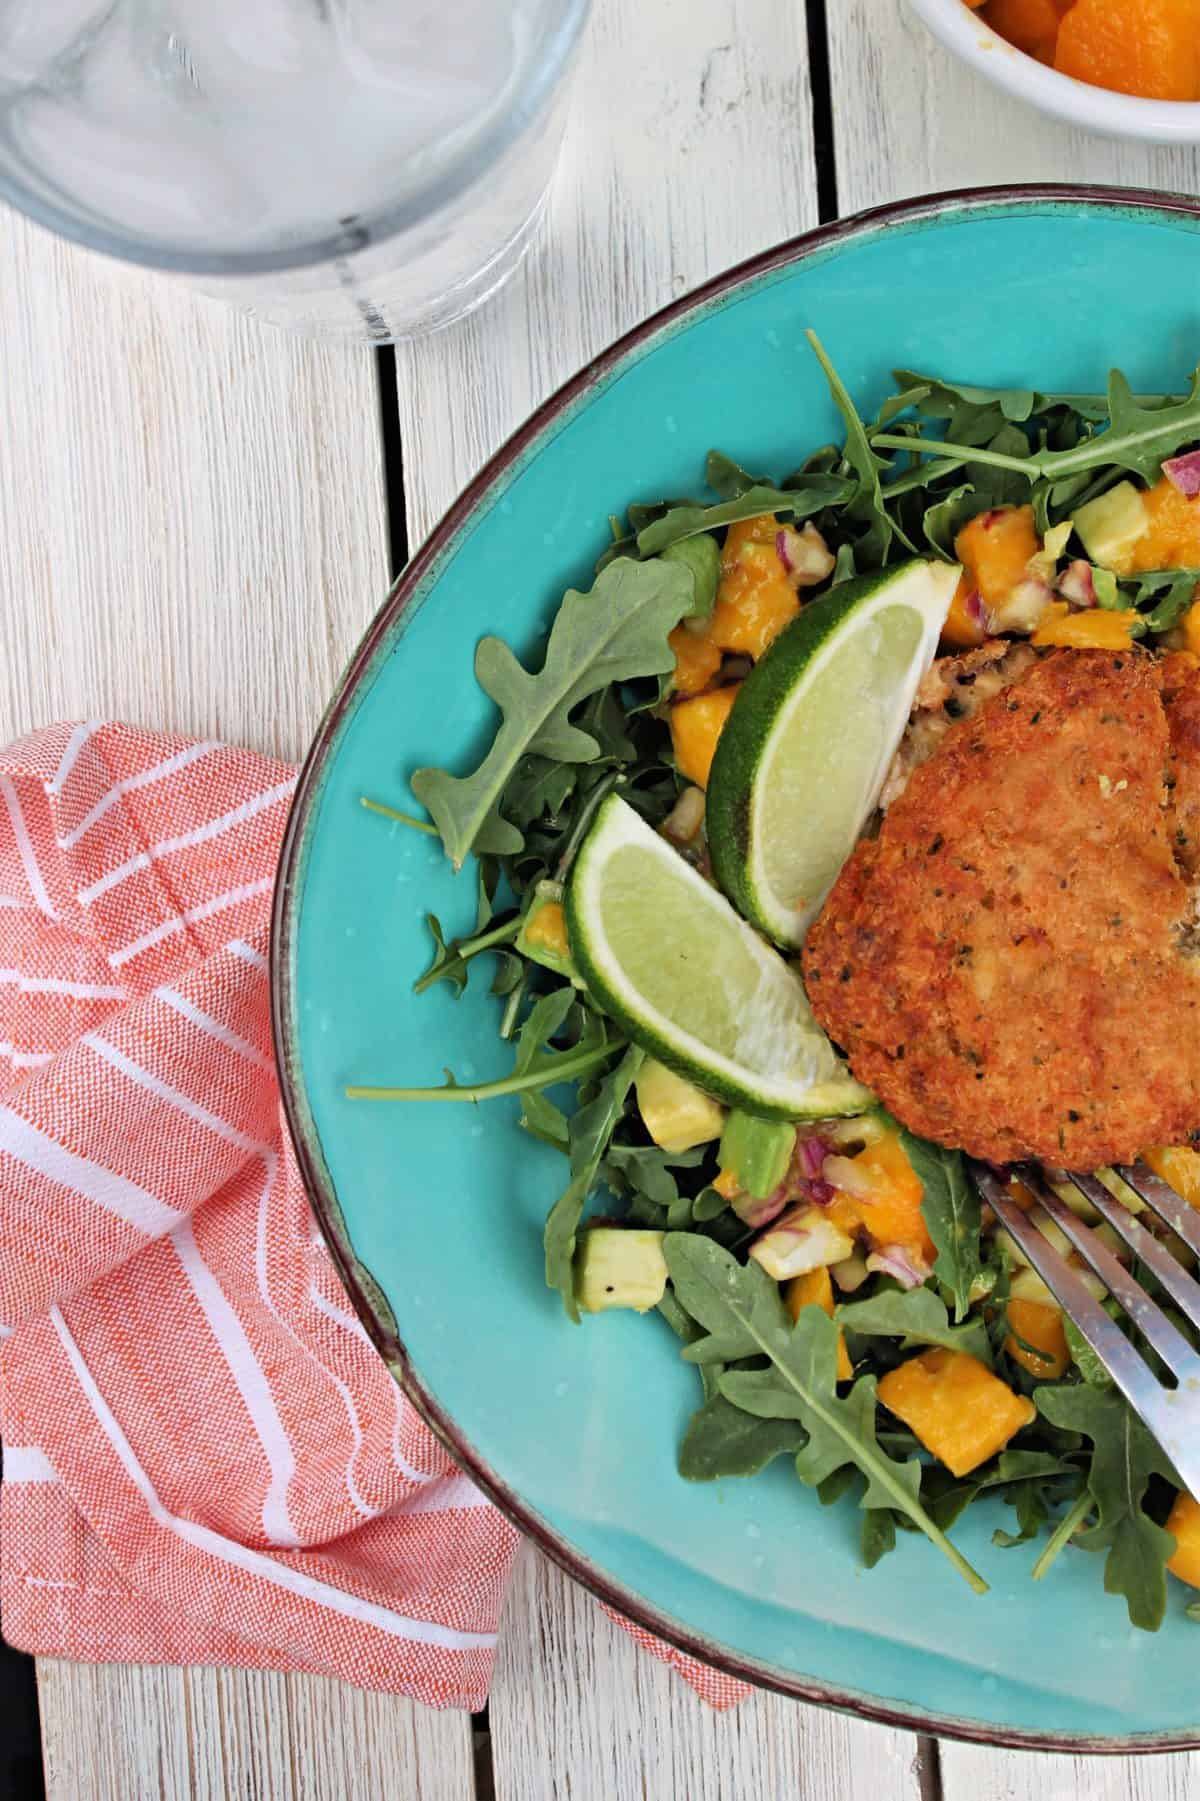 Overhead shot of Crab cake Salad on a picnic table with a napkin.